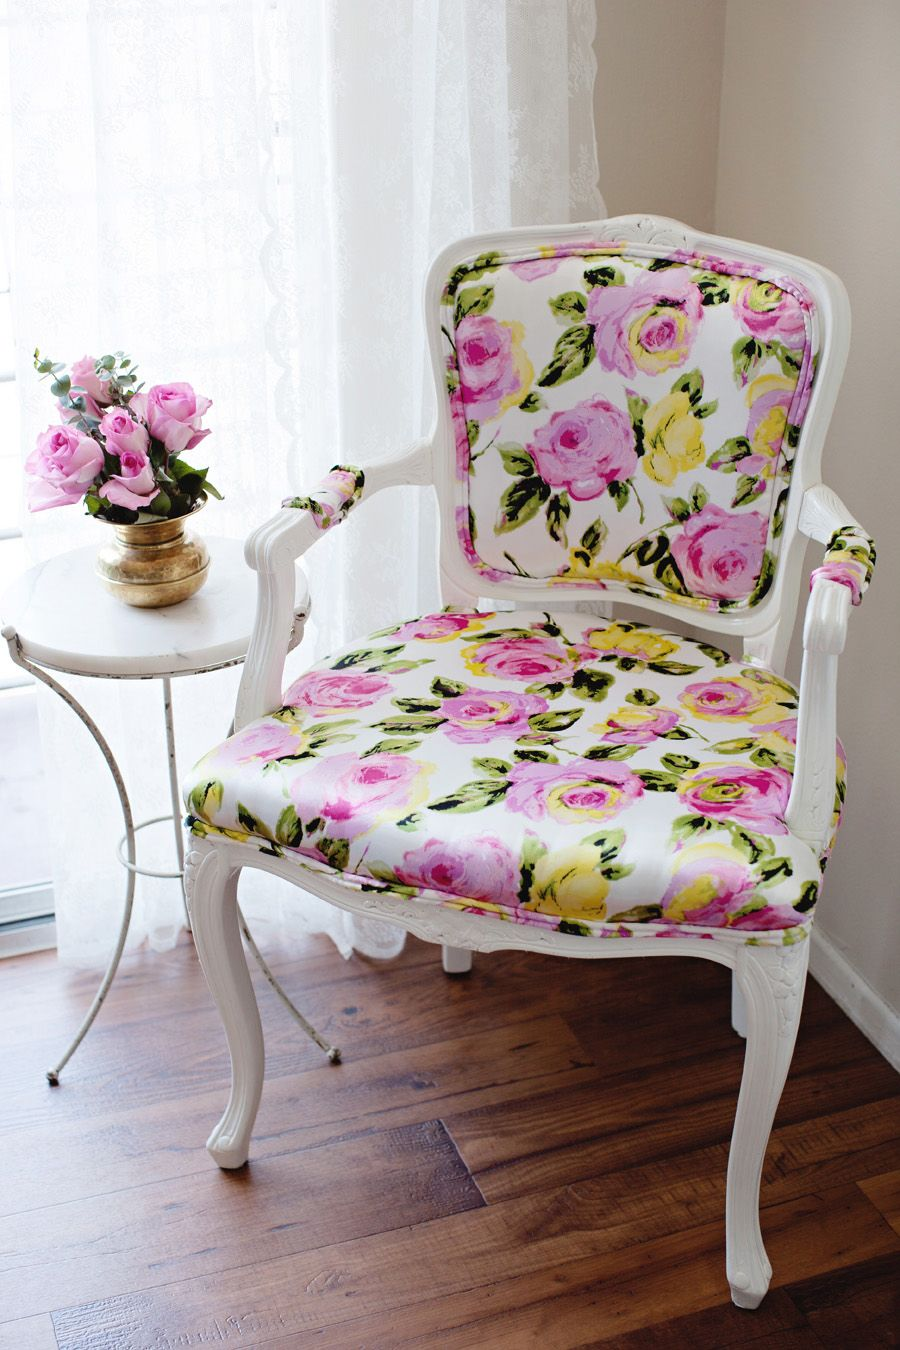 Nice DIY: I Reupholstered Our Bergere Chair With Florals!